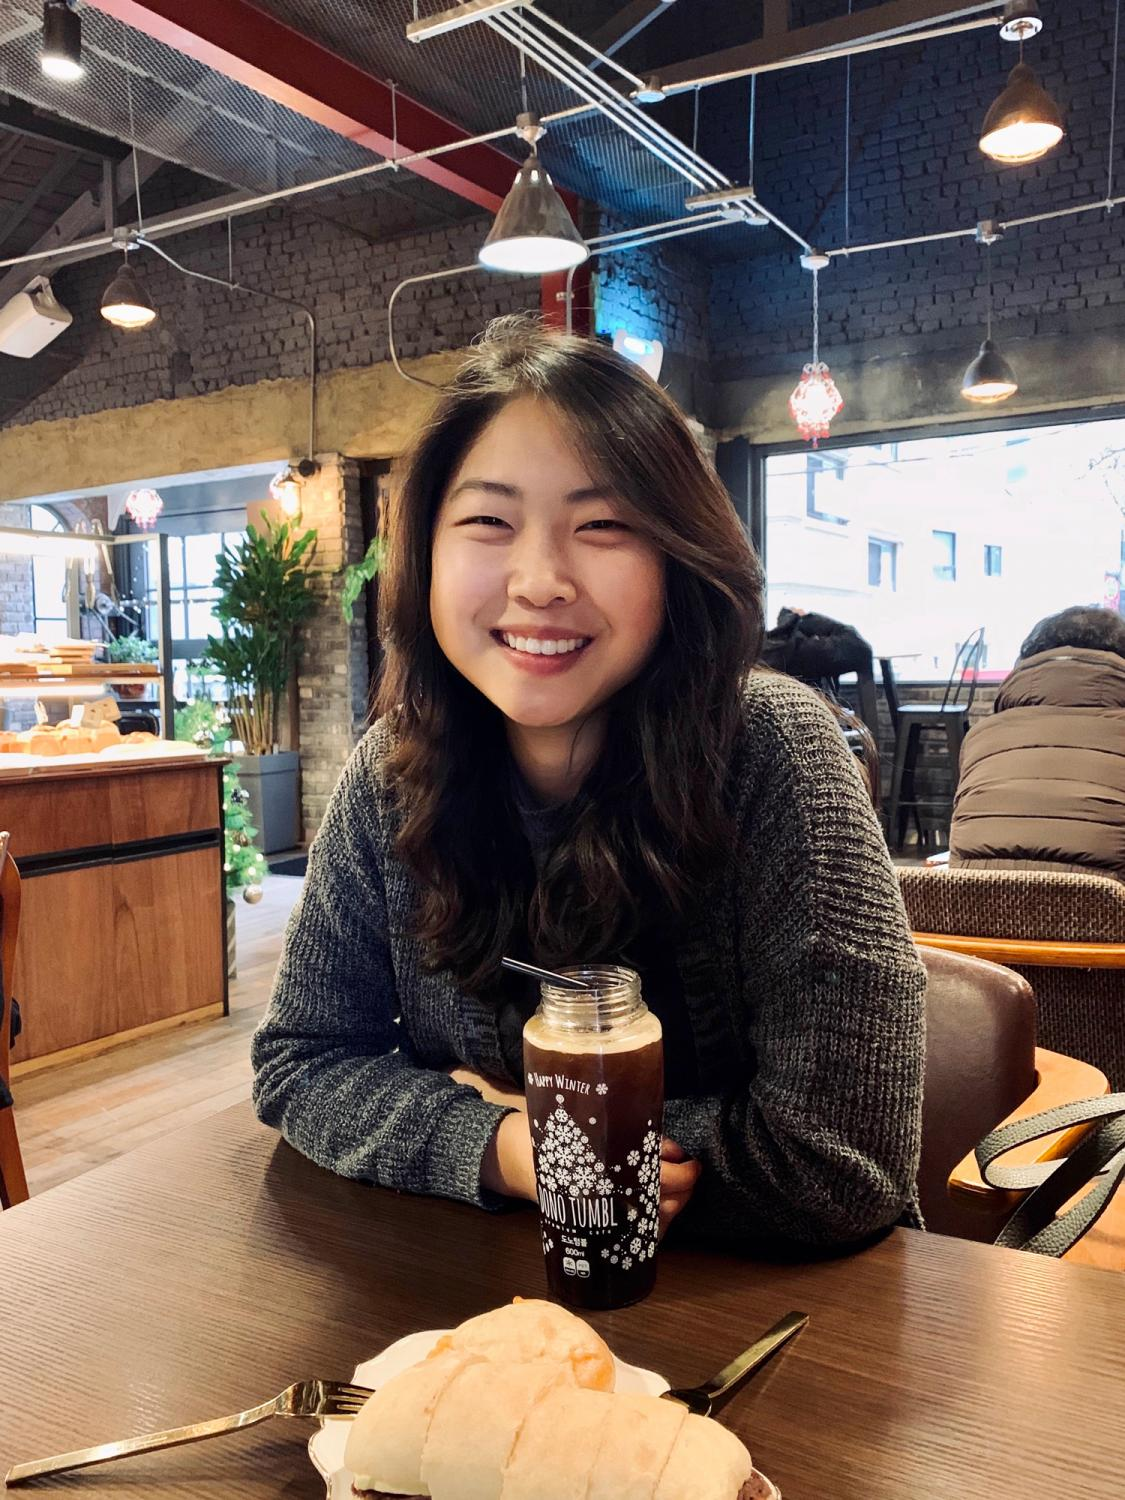 Image of a young woman of Asian descent, smiling in a coffee shop. Her torso and head are visible, and she is leaning her forearms on the table in front of her.